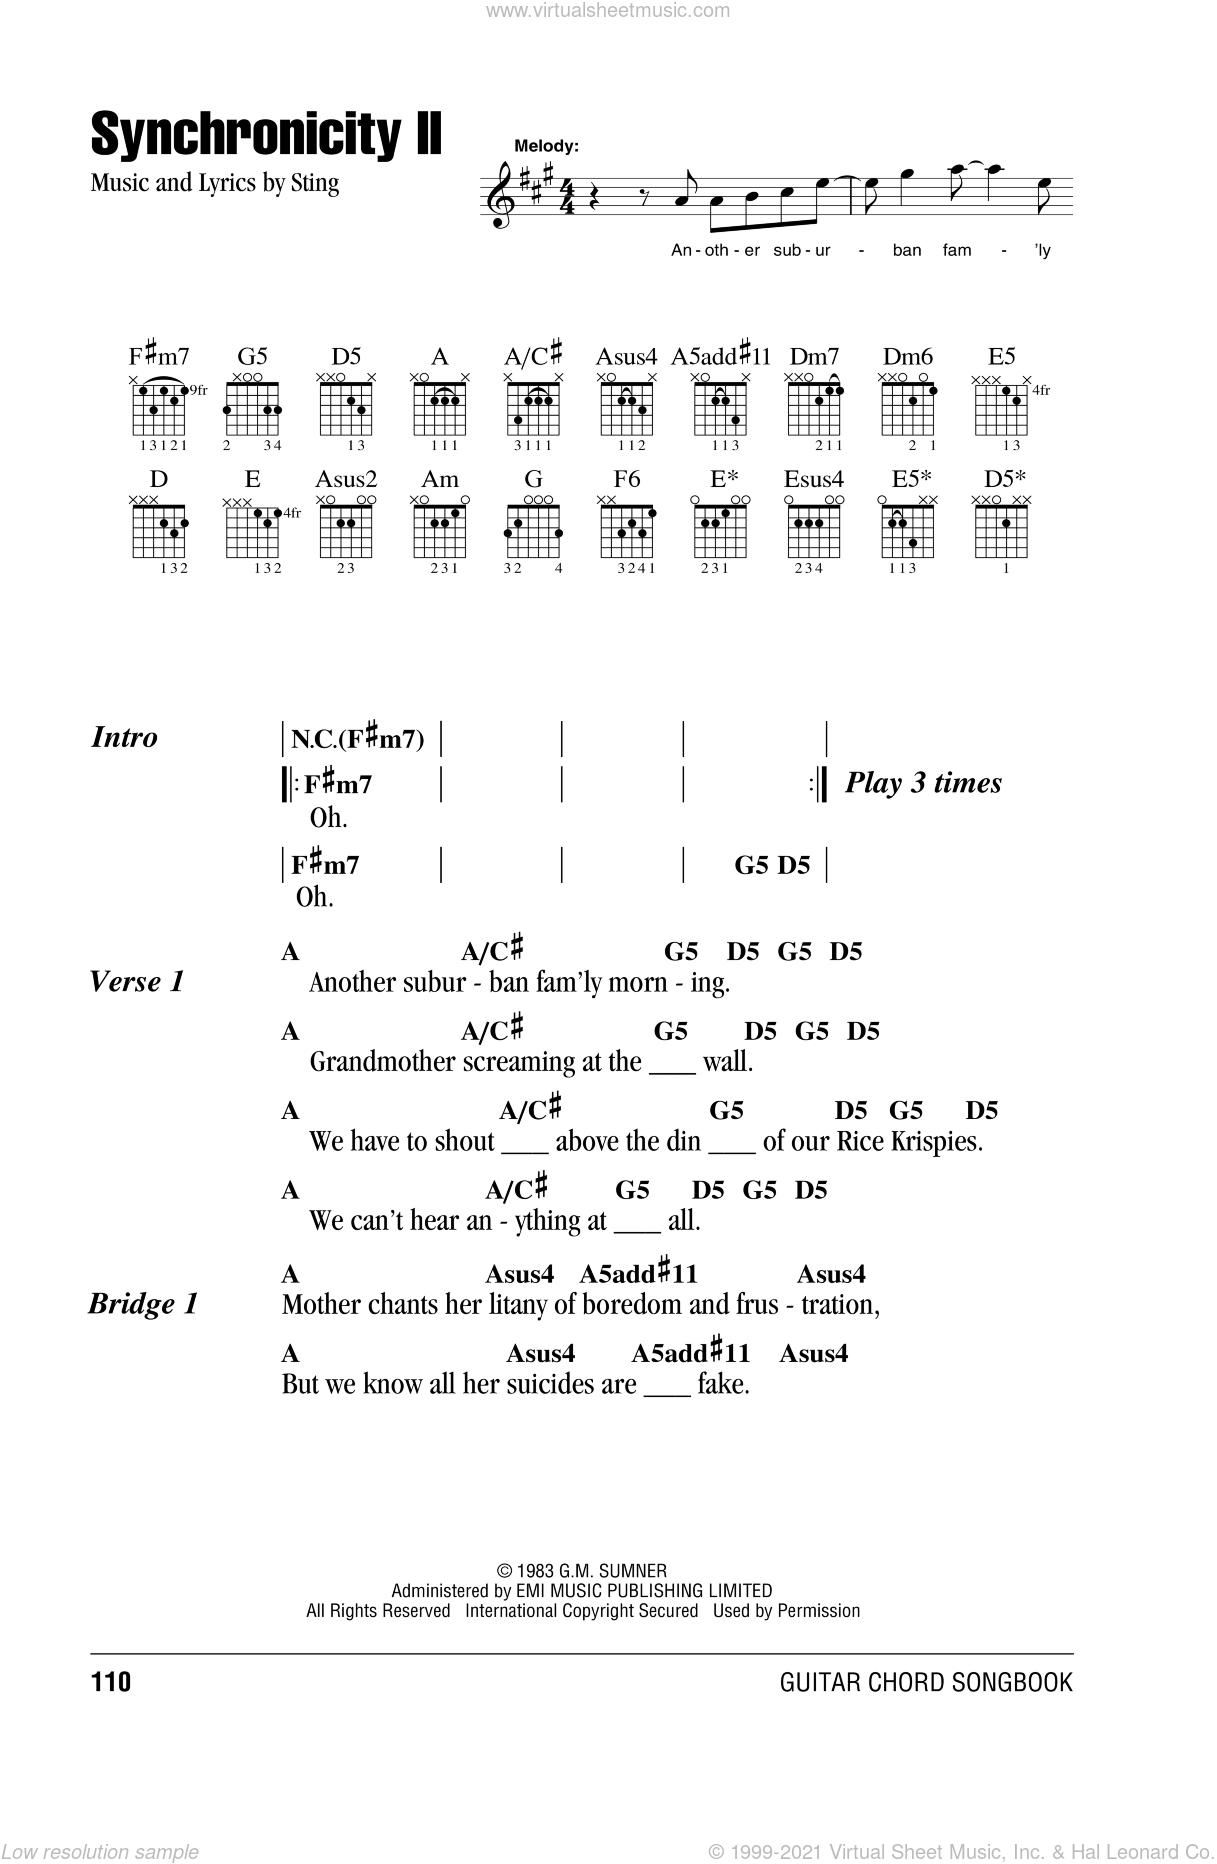 Synchronicity II sheet music for guitar (chords) by The Police and Sting, intermediate skill level